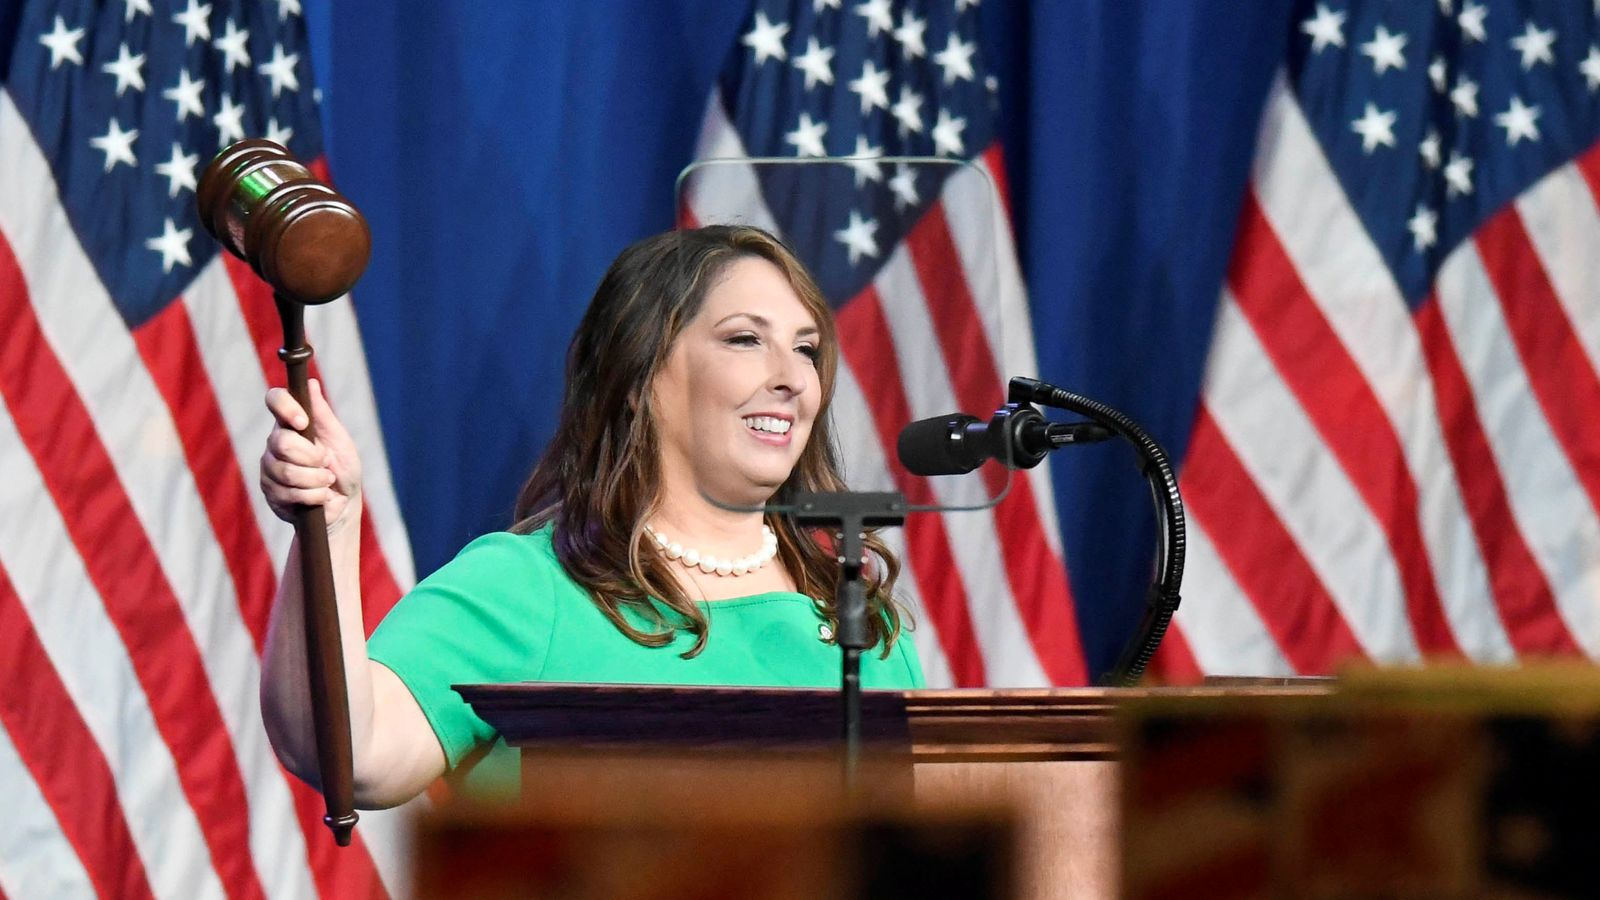 RNC Chairwoman Ronna McDaniel reacts at the Republican National Convention at the Republican National Convention in Charlotte